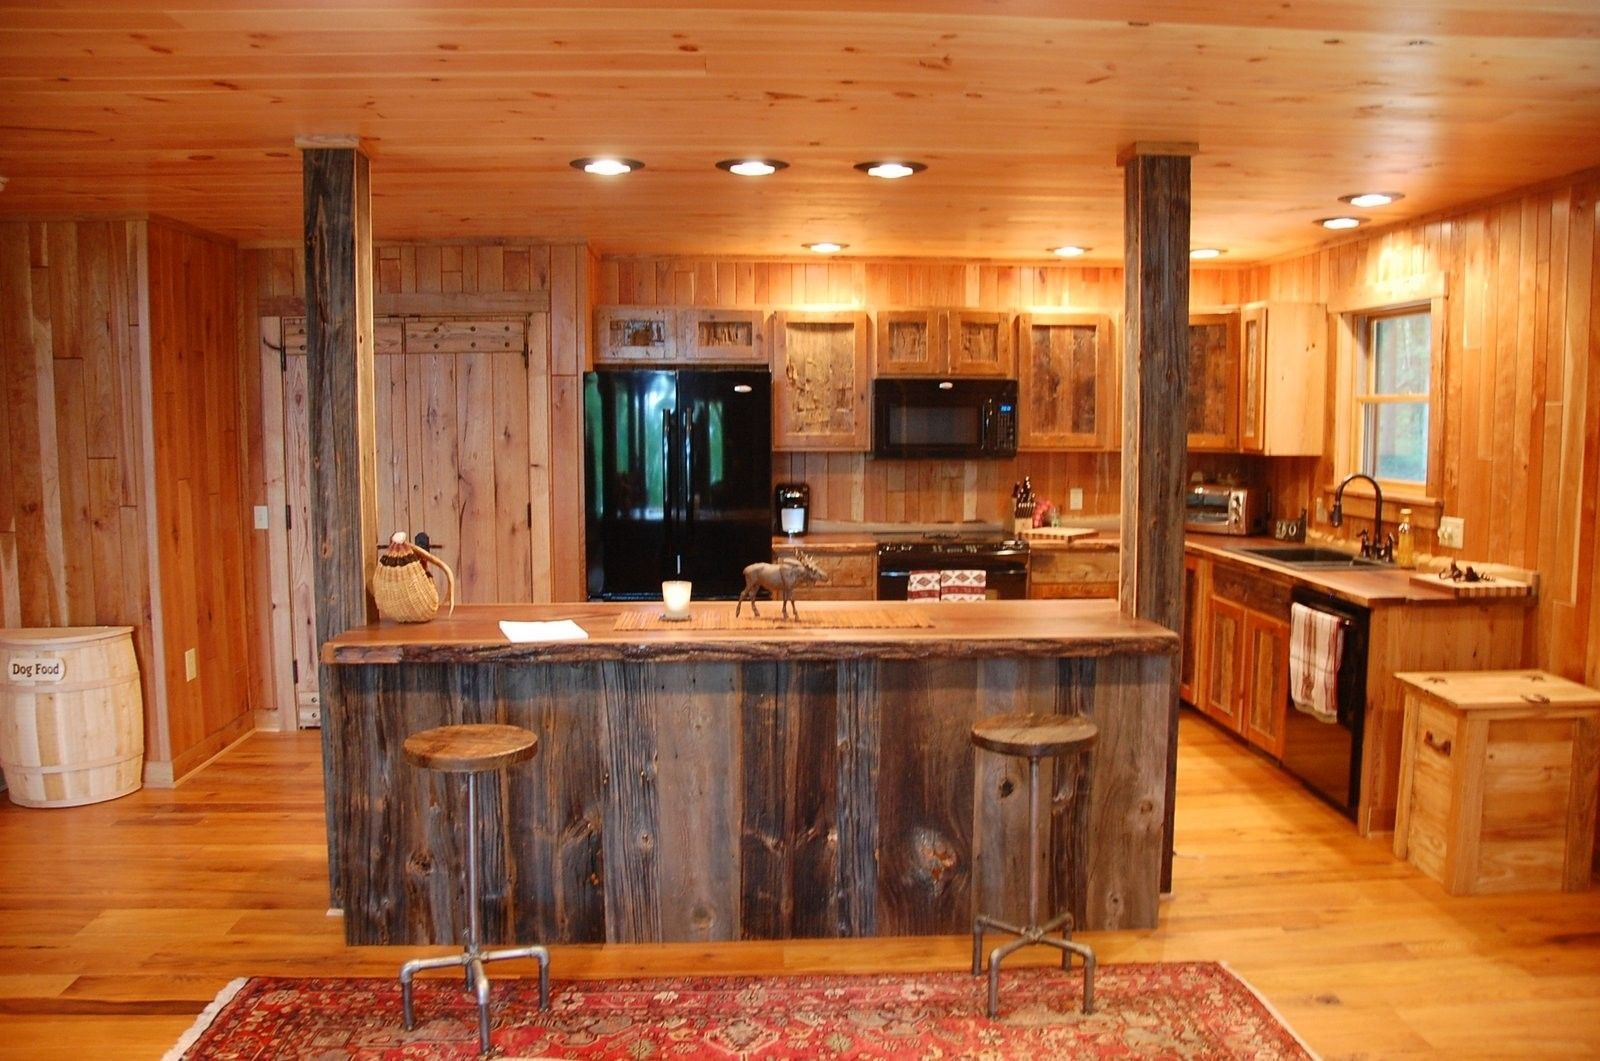 Custom Made Reclaimed Wood Rustic Kitchen Cabinets For wood design ...